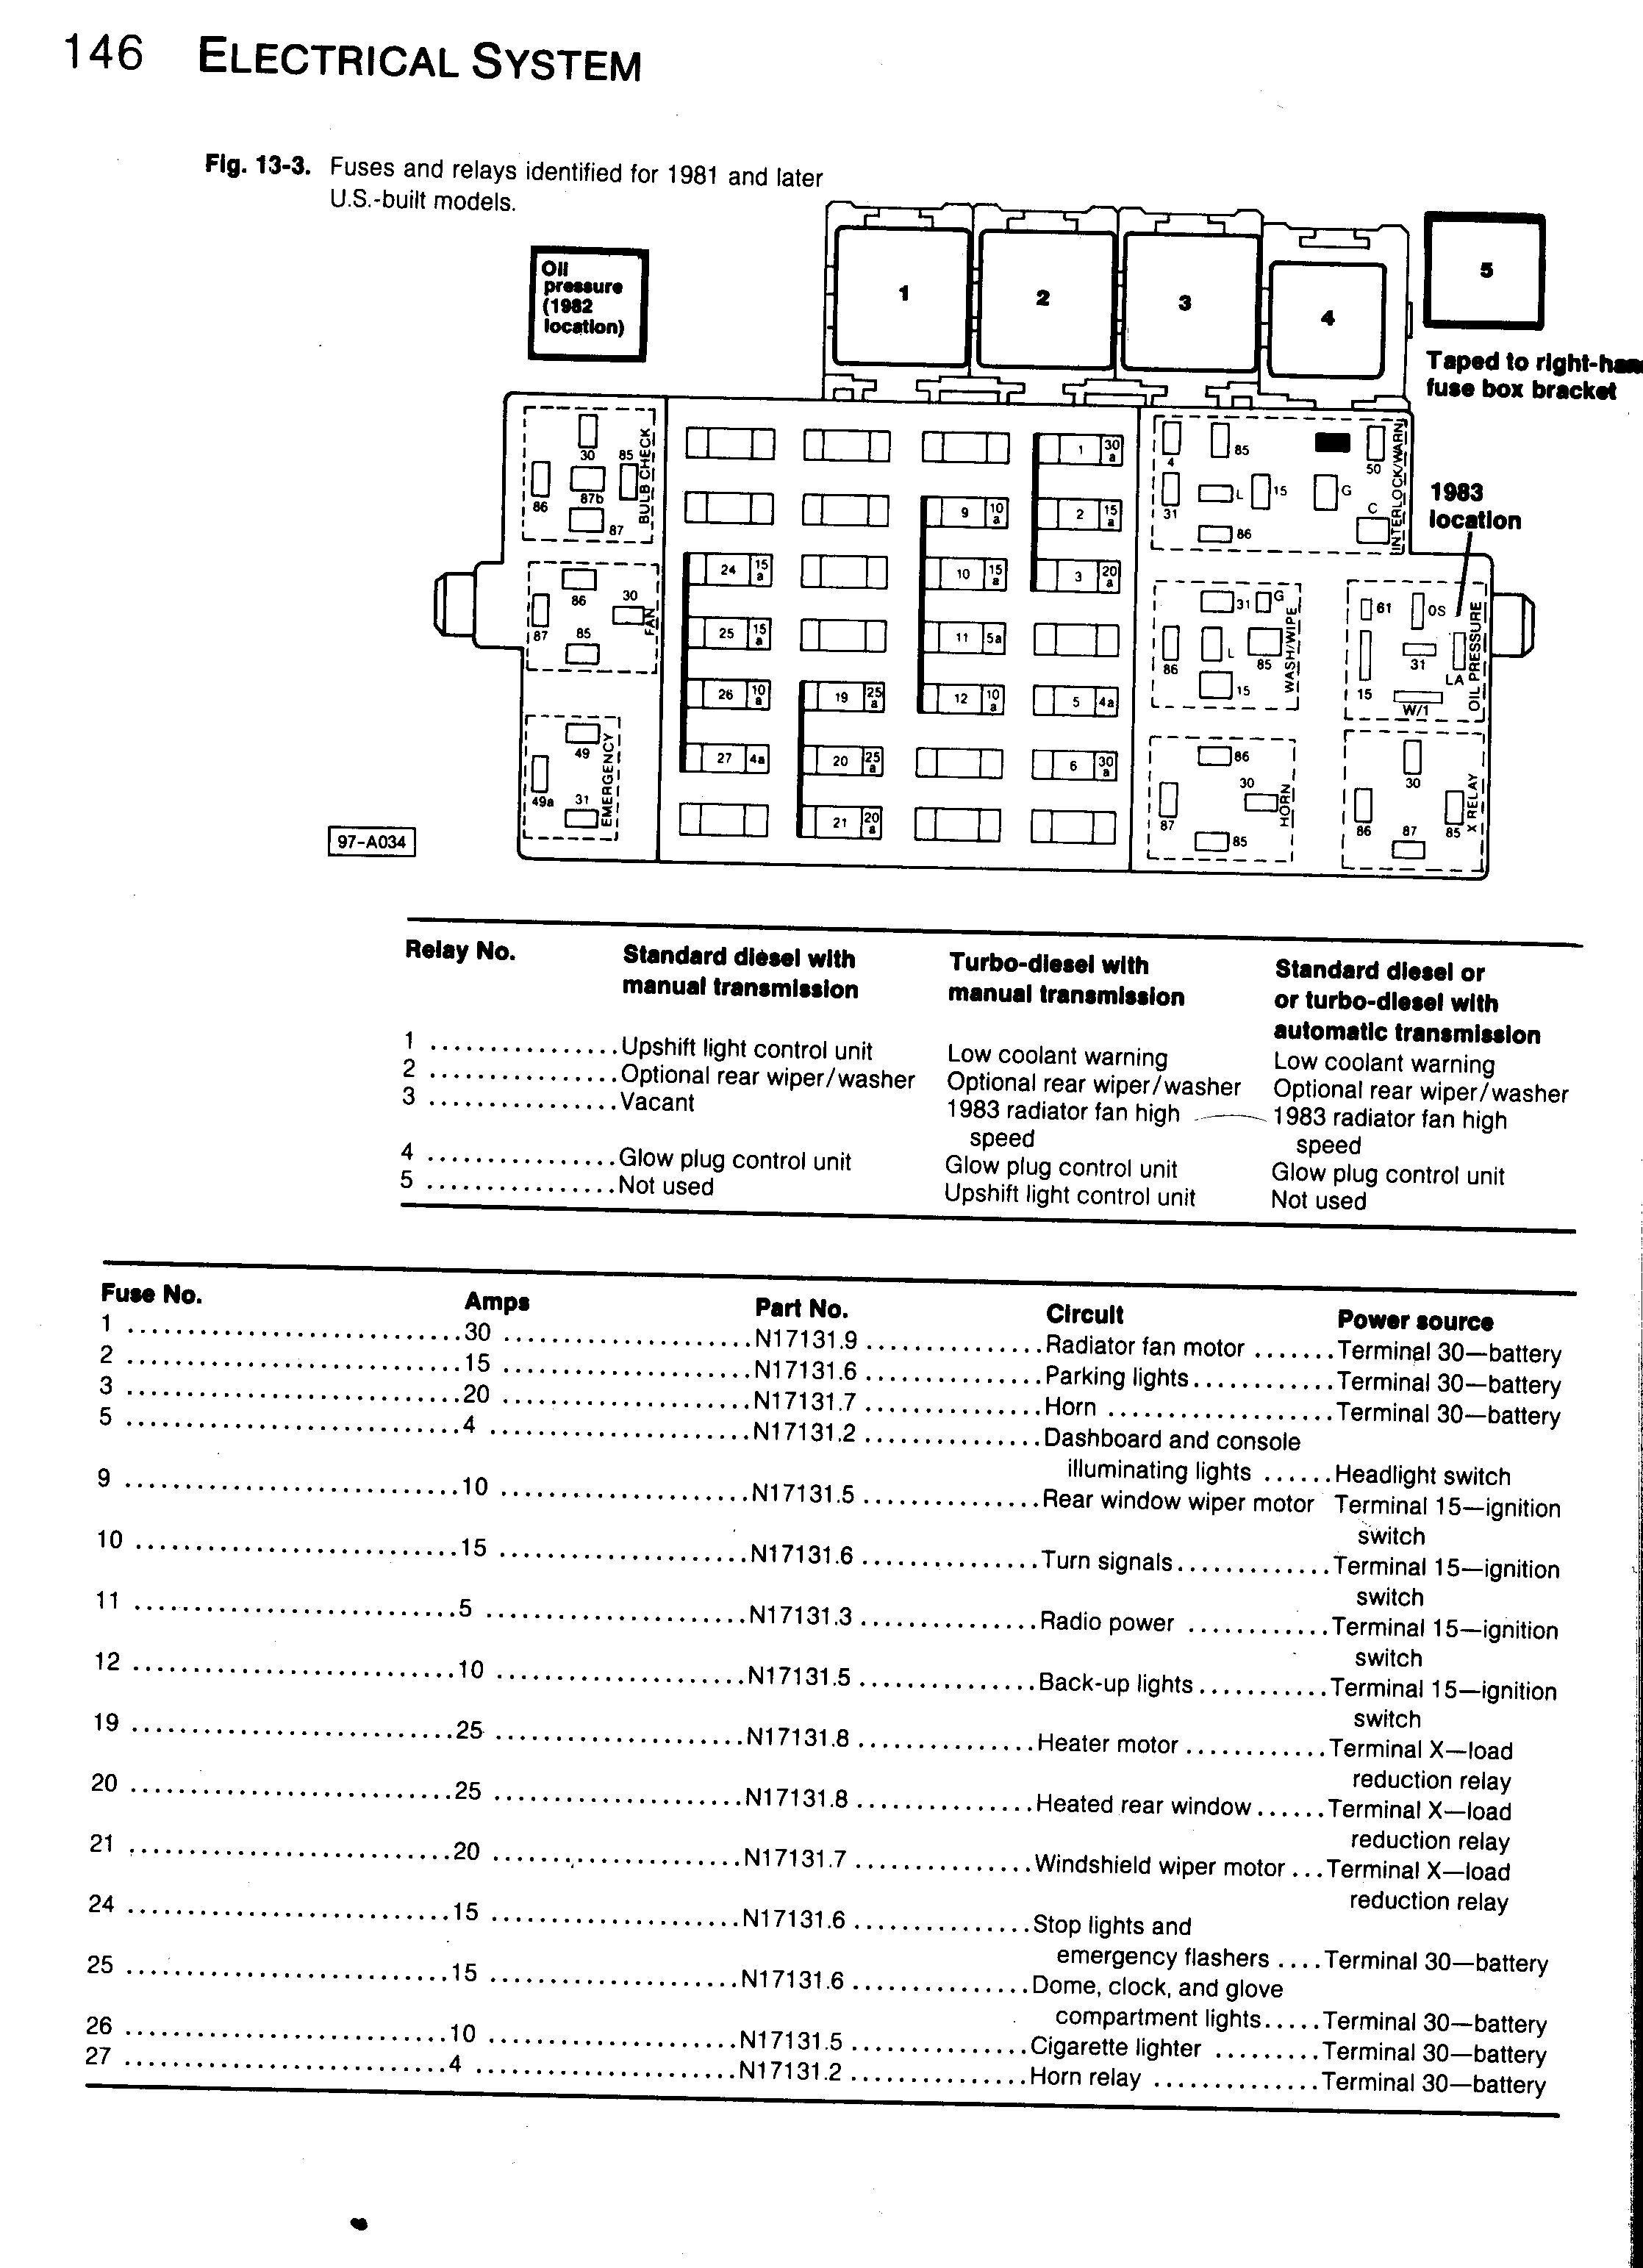 2005 Mercury Grand Marquis Fuse Diagram | Wiring Diagram on new beetle fuse box, pontiac fuse box, sentra fuse box, mazda3 fuse box, grand am tail light fuse, passat fuse box, ram 1500 fuse box, wrangler fuse box, town car fuse box, explorer fuse box, tacoma fuse box, suburban fuse box, pacifica fuse box, liberty fuse box, silverado fuse box, equinox fuse box, charger fuse box, patriot fuse box, grand prix fuse box, grand marquis fuse box,